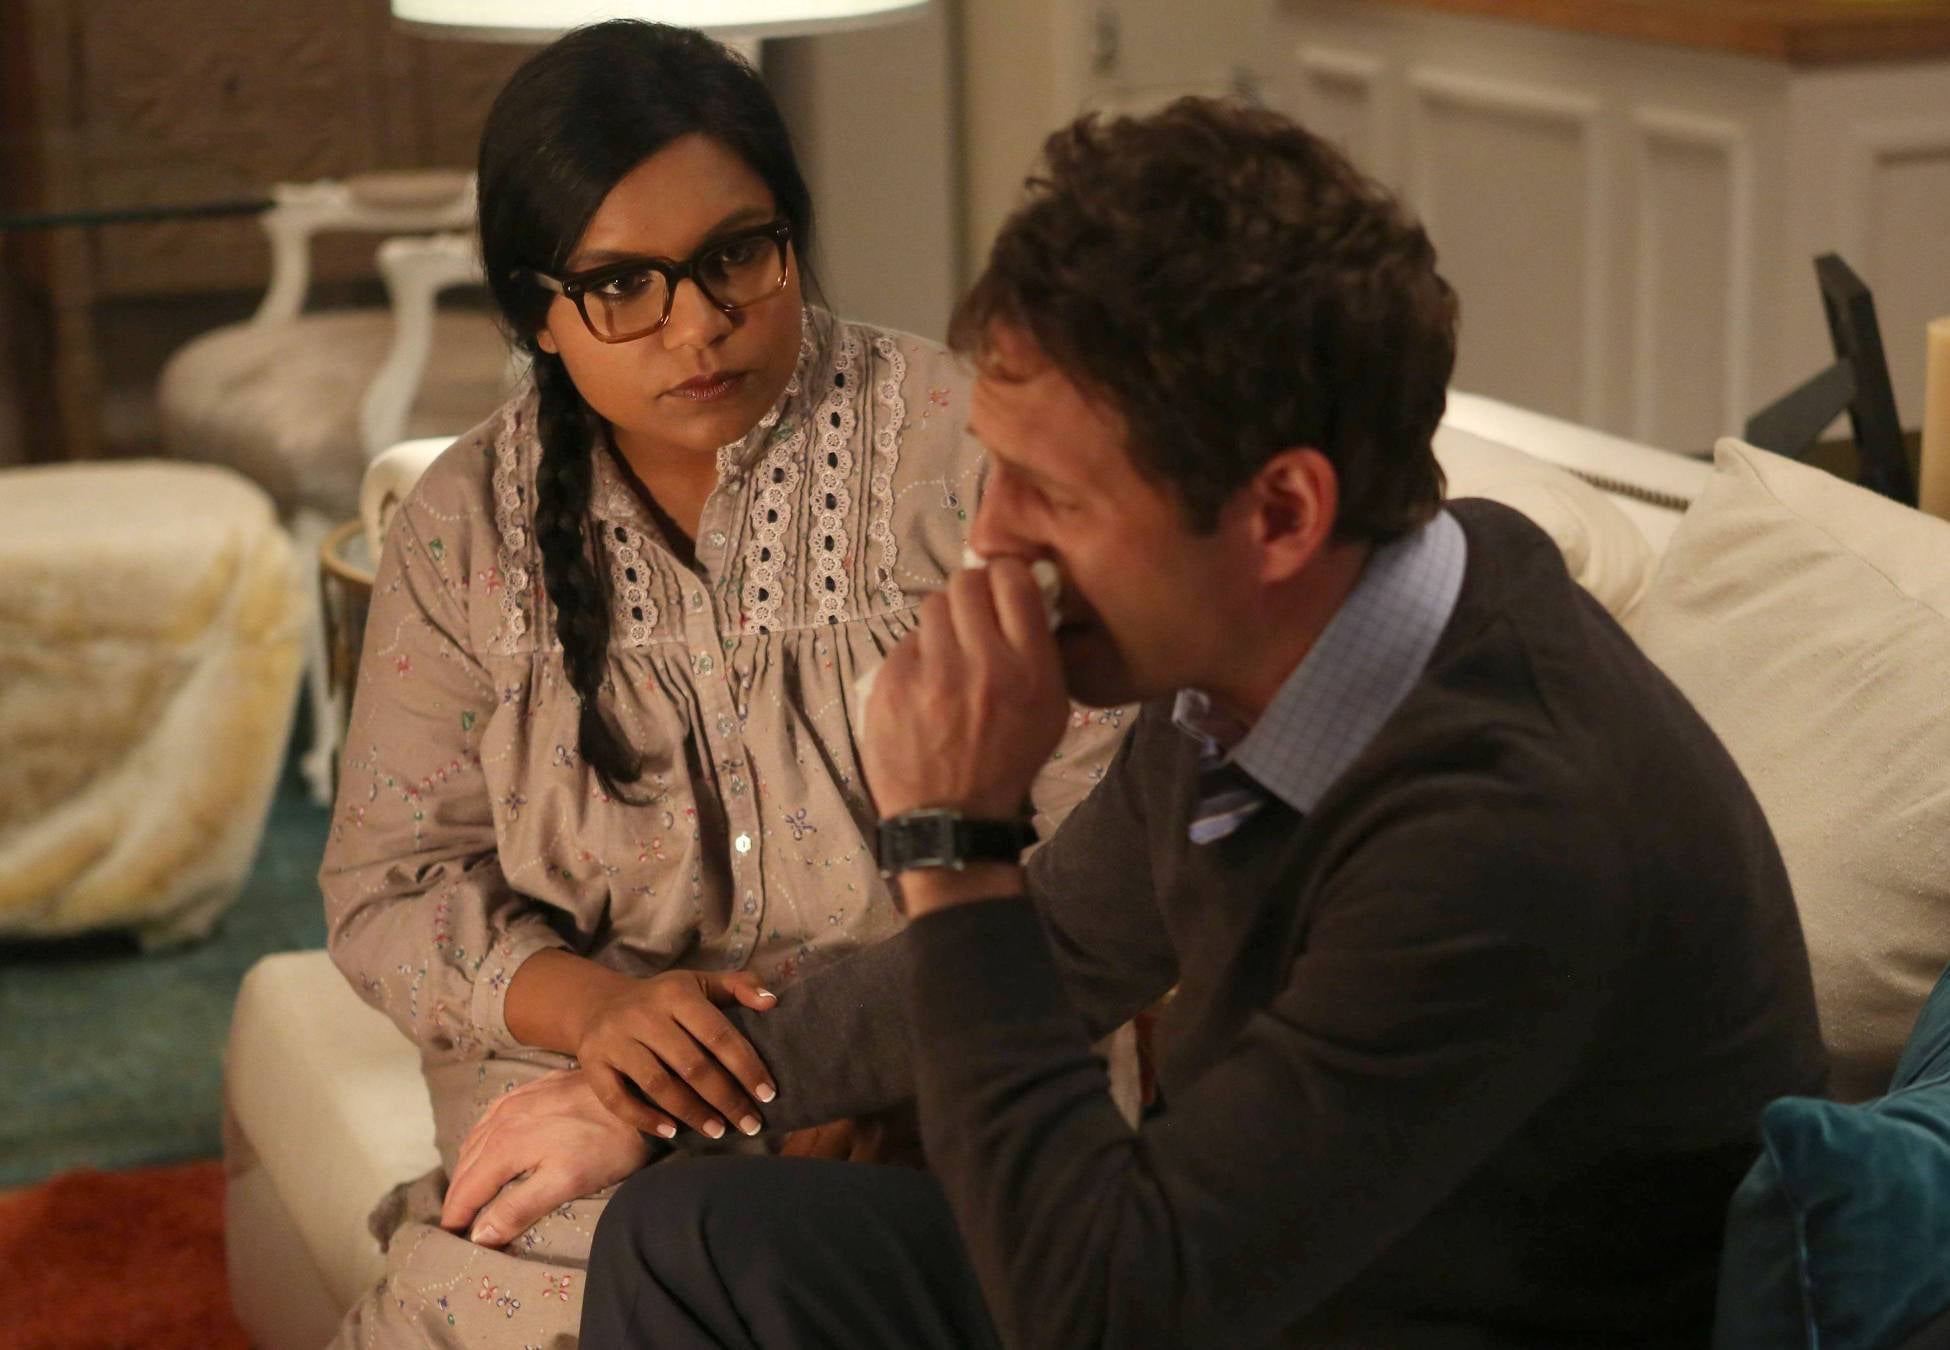 Mindy comforts Cliff while he grieves for his grandmother.